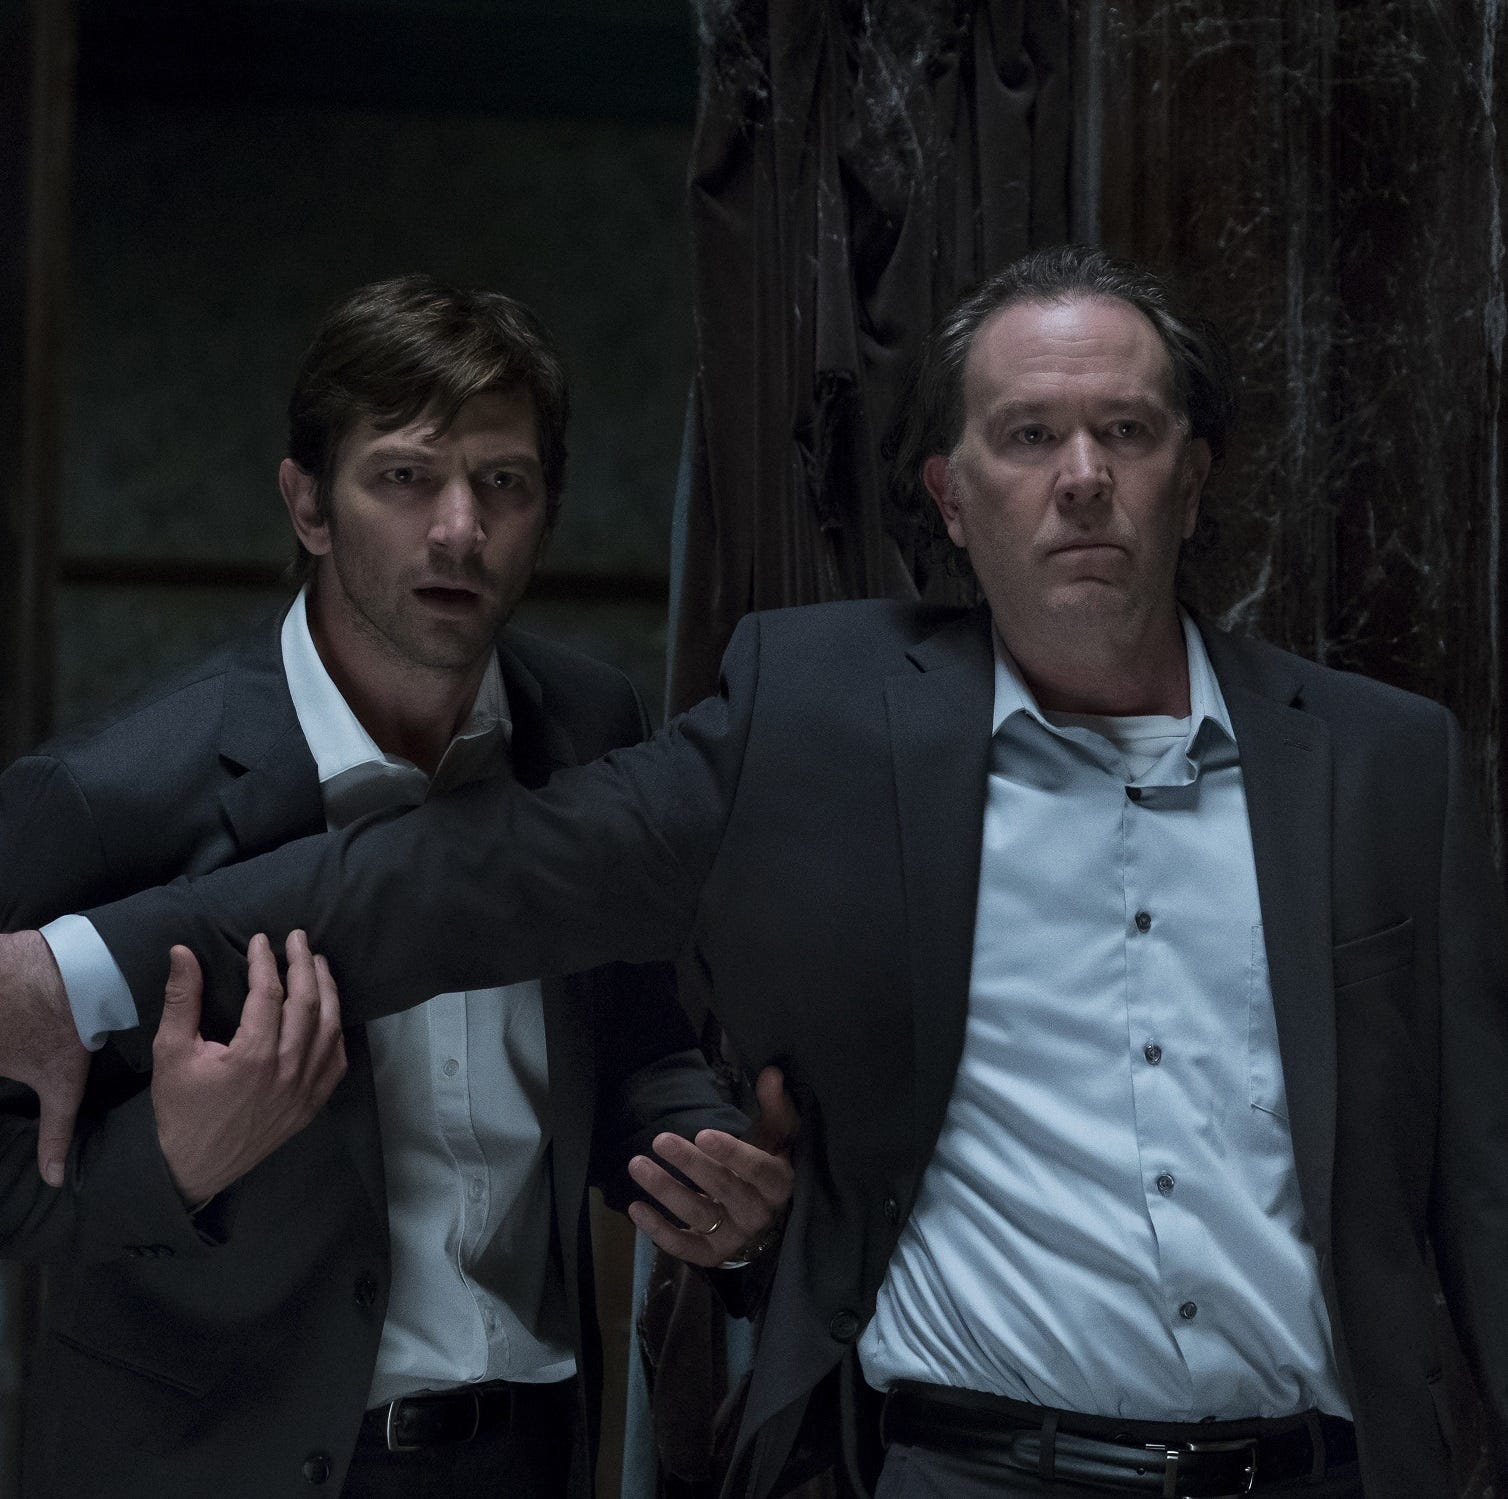 """Netflix's """"The Haunting of Hill House,"""" based on a 1959 novel of the same name, follows a family who once lived in an old mansion that may be haunted. The series' stars include Michiel Huisman and Timothy Hutton."""